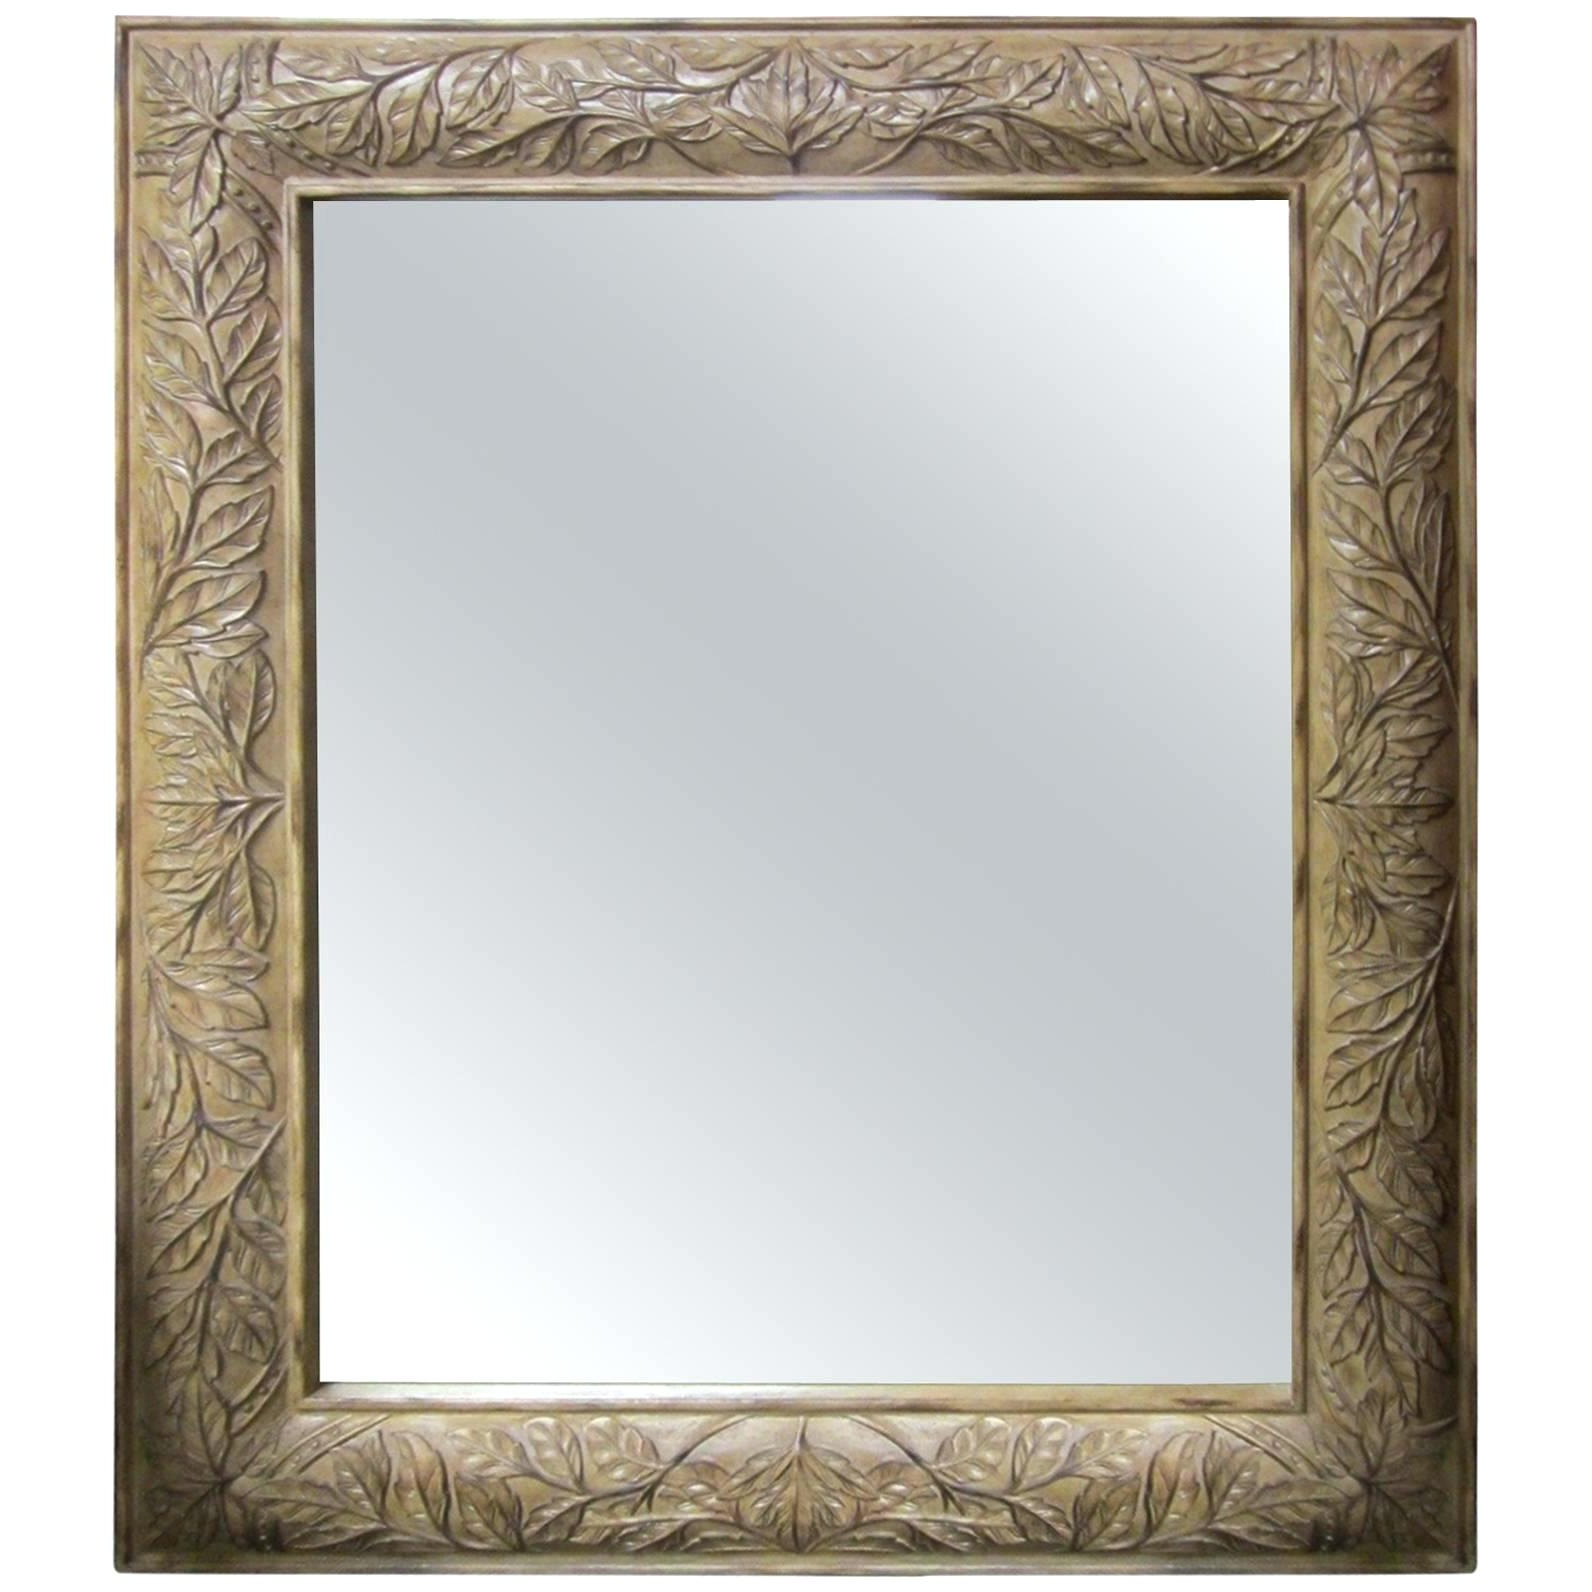 Latest Large Silver Framed Wall Mirror In Large Wall Mirror With Frame Of Floor A Carved Wood For Sale (Gallery 20 of 20)